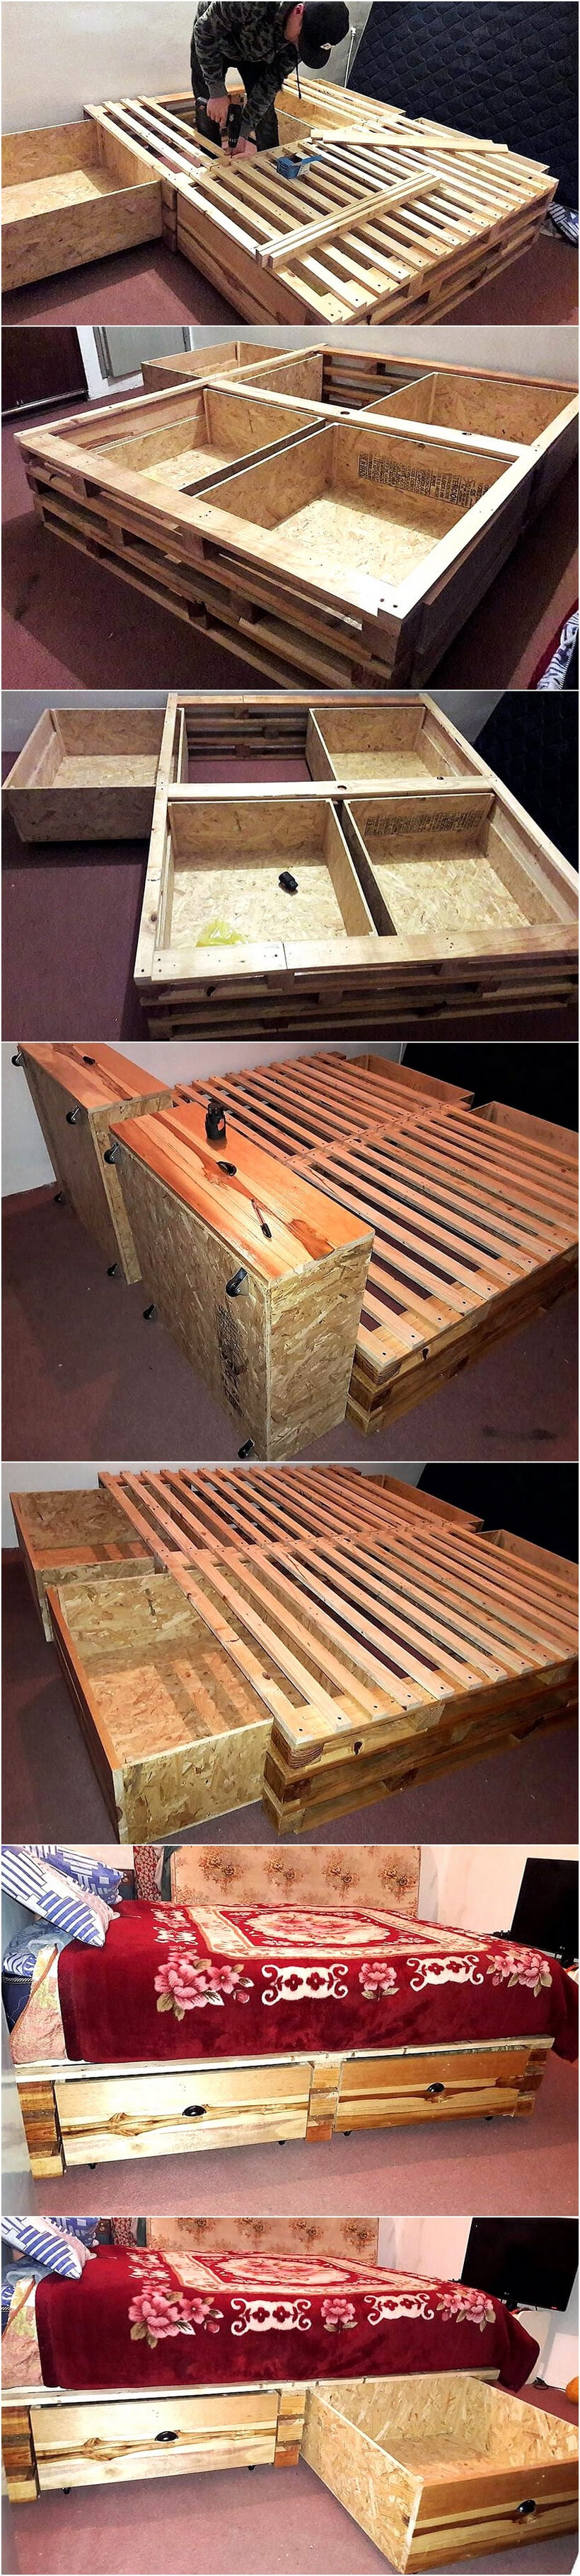 diy wood pallet bed with storage